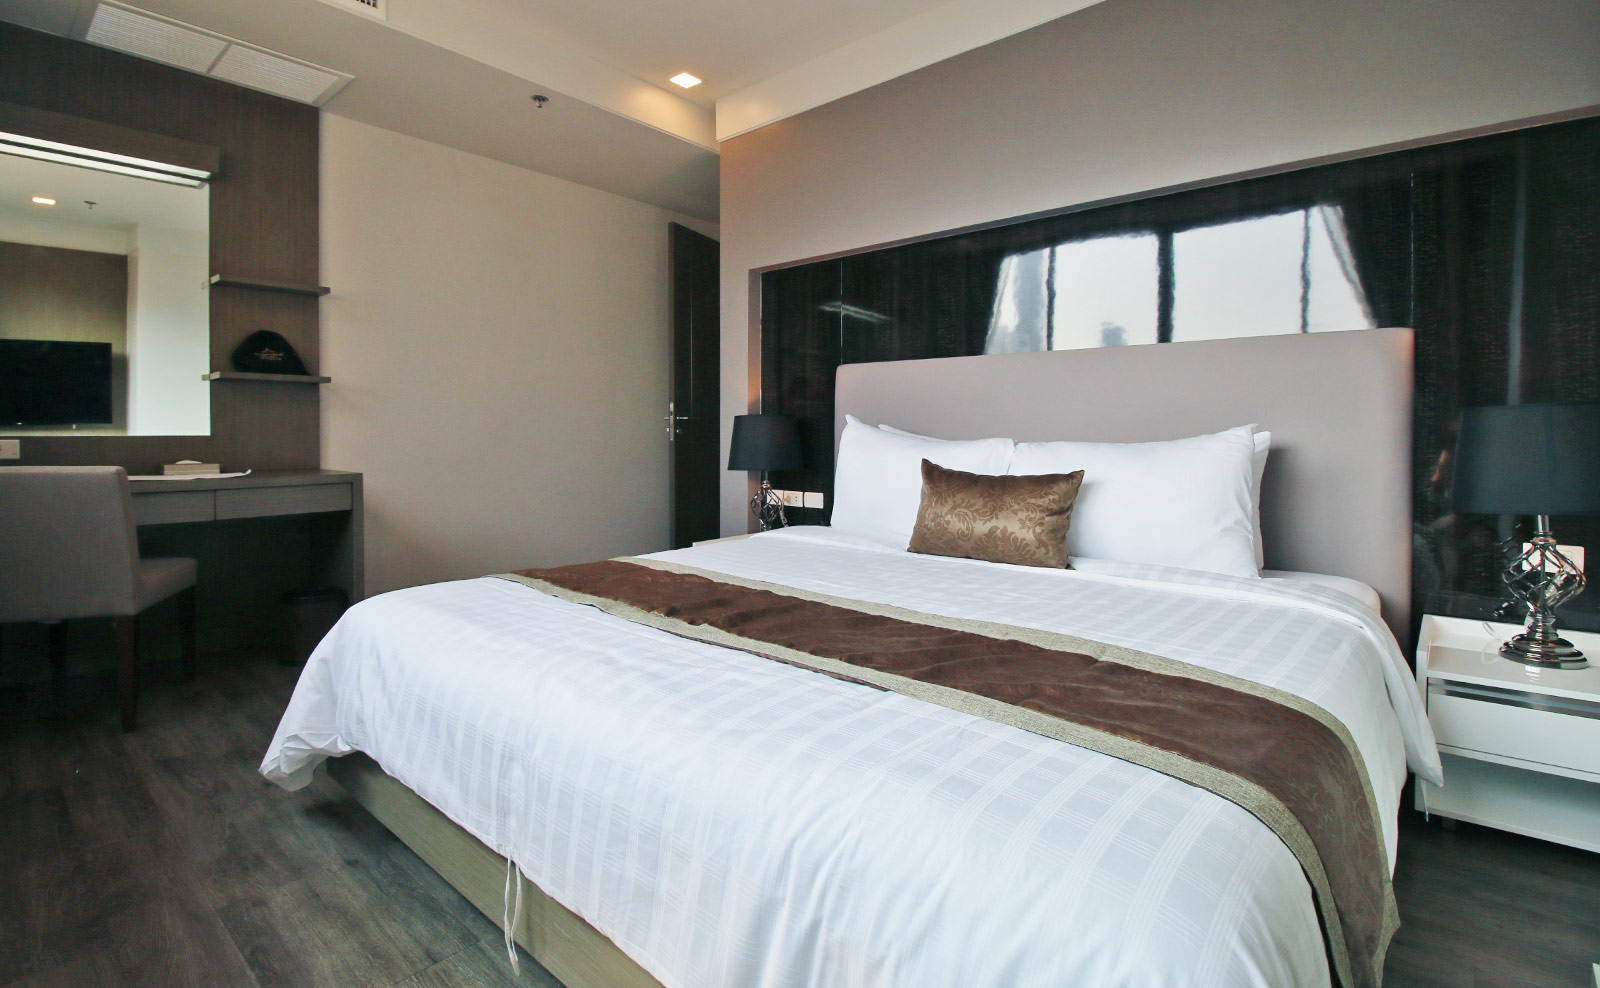 METROPOLE Residence (旧 Parc 39):1Bed Room Photos No.8